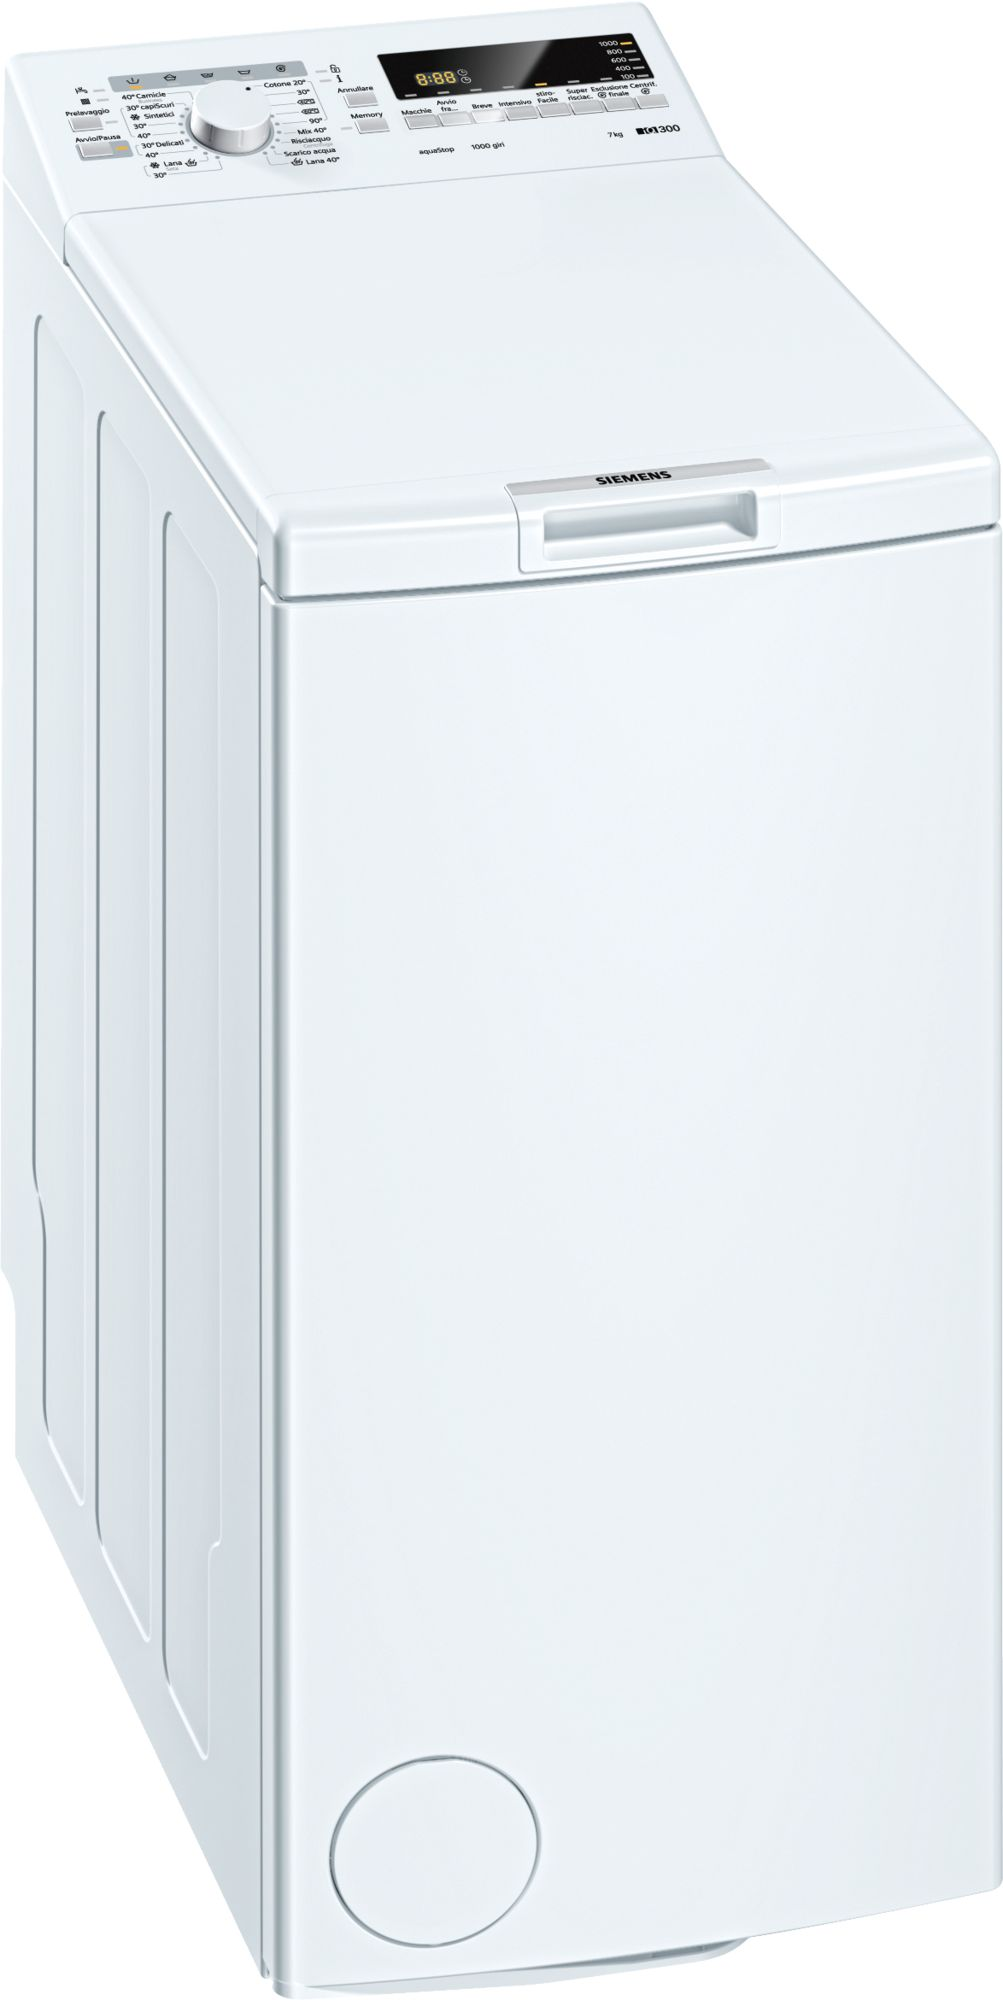 LAVABIANCHERIA FREESTANDING SIEMENS WP10T237IT WP10T237IT - BbmShop